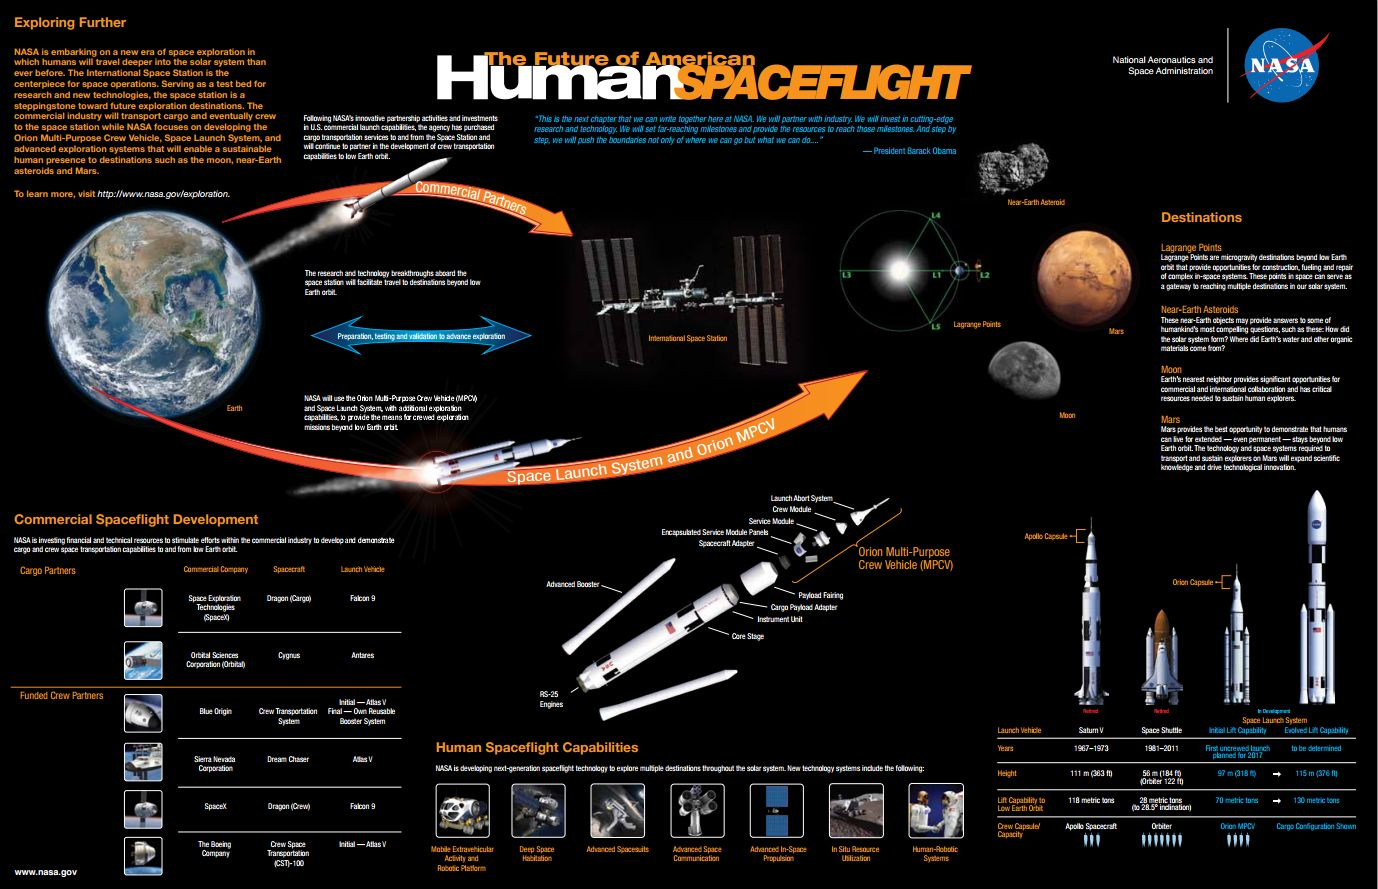 Nasa S Picture Of The Future Of Human Spaceflight